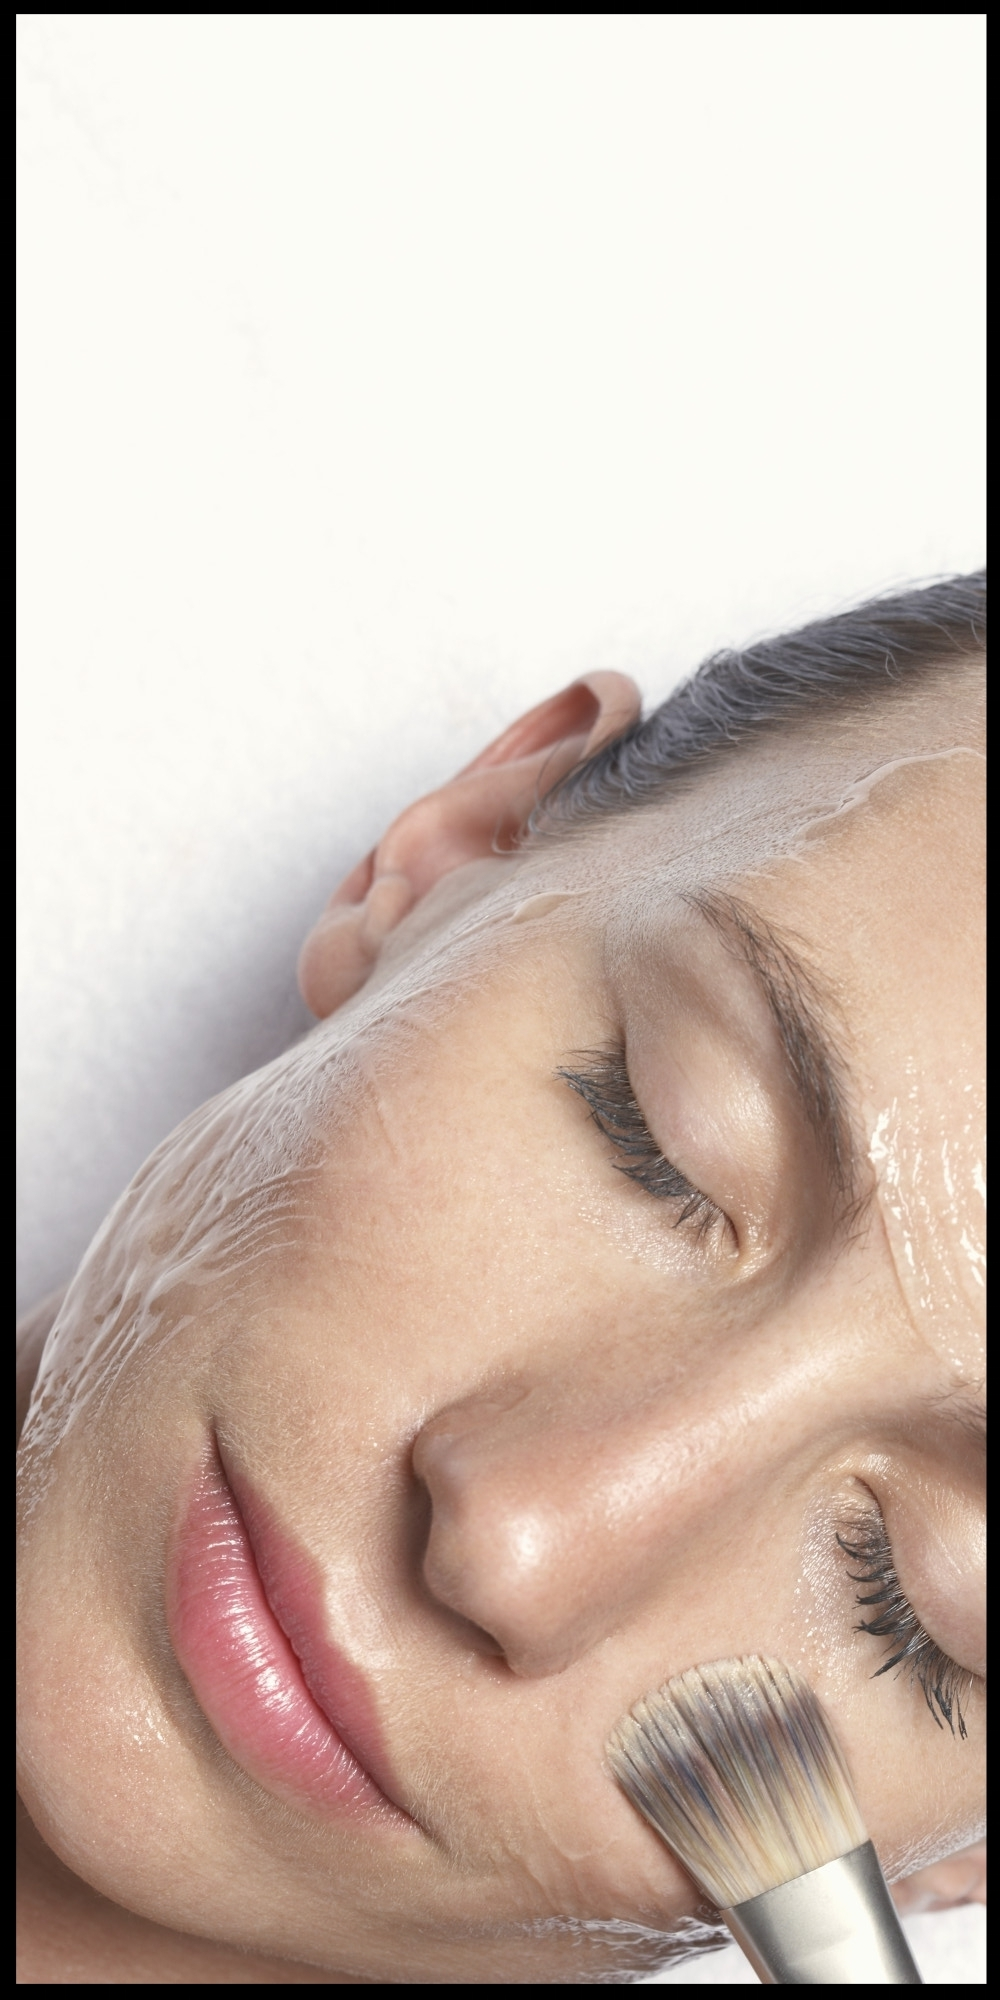 Resurfacing Treatments - Recommended for those with dull or uneven skin tone, acne or acne scarring, congested pores, wrinkles or loss of firmness; Image resurfacing treatments use natural and therapeutic acids to rejuvenate your skin.You, along with your Aesthetician, will choose between five different treatments specifically targeted for your skin type and skincare goals.Level I | $95 Level II | $115Organic Ormedic Lift:A blend of pumpkin, pineapple, papaya, and mango fruit enzymes and peptides in an organic aloe-vera gel base. This non-chemical peel re-balances, regenerates, and restores skin while comfrey plant derived stem cell technology recharge your skin's stem cells helping to maintain youthfulness of skin.Signature Lift:This results-driven treatment combines vitamin C & hydroxy acids to speed up cellular renewal. Perfect for redness prone skin, you will see noticeable results in just one session.Lightening Lift:Uneven complexions have met their match. This results-driven treatment combines the most innovative and effective botanical brighteners luminescence and seashine with echinacea plant-derived stem cells and anti-aging peptides immediately leaving the skin younger looking and luminous.Wrinkle Lift:This ultra-resurfacing blend of glycolic acid & retinol visibly reduces the appearance of fine lines and wrinkles leaving skin firm and revitalized. Buddleja stem cells reduce irritation and diminish photo-aging, botanical coffee, and peppermint energize, while eucalyptus and ylang ylang purify the skin.Acne Lift:A potent blend of alpha and beta hydroxy acids blended with lilac plant-derived stem cells to reduce blemishes, redness, and diminish post-breakout dark spots. Detoxifying ylang ylang and eucalyptus purify oily skin and effectively treat and heal acne blemishes.Perfection Lift: This distinct blend of exfoliating agents, 5% lactic acid, 5% salicylic acid, and 5% resorcinol work synergistically to visibly reduce the appearance of fine lines, correct uneven skin, smooth rough texture, and reduce acne blemishes. $135.00*A post treatment take home kit is provided with each treatment